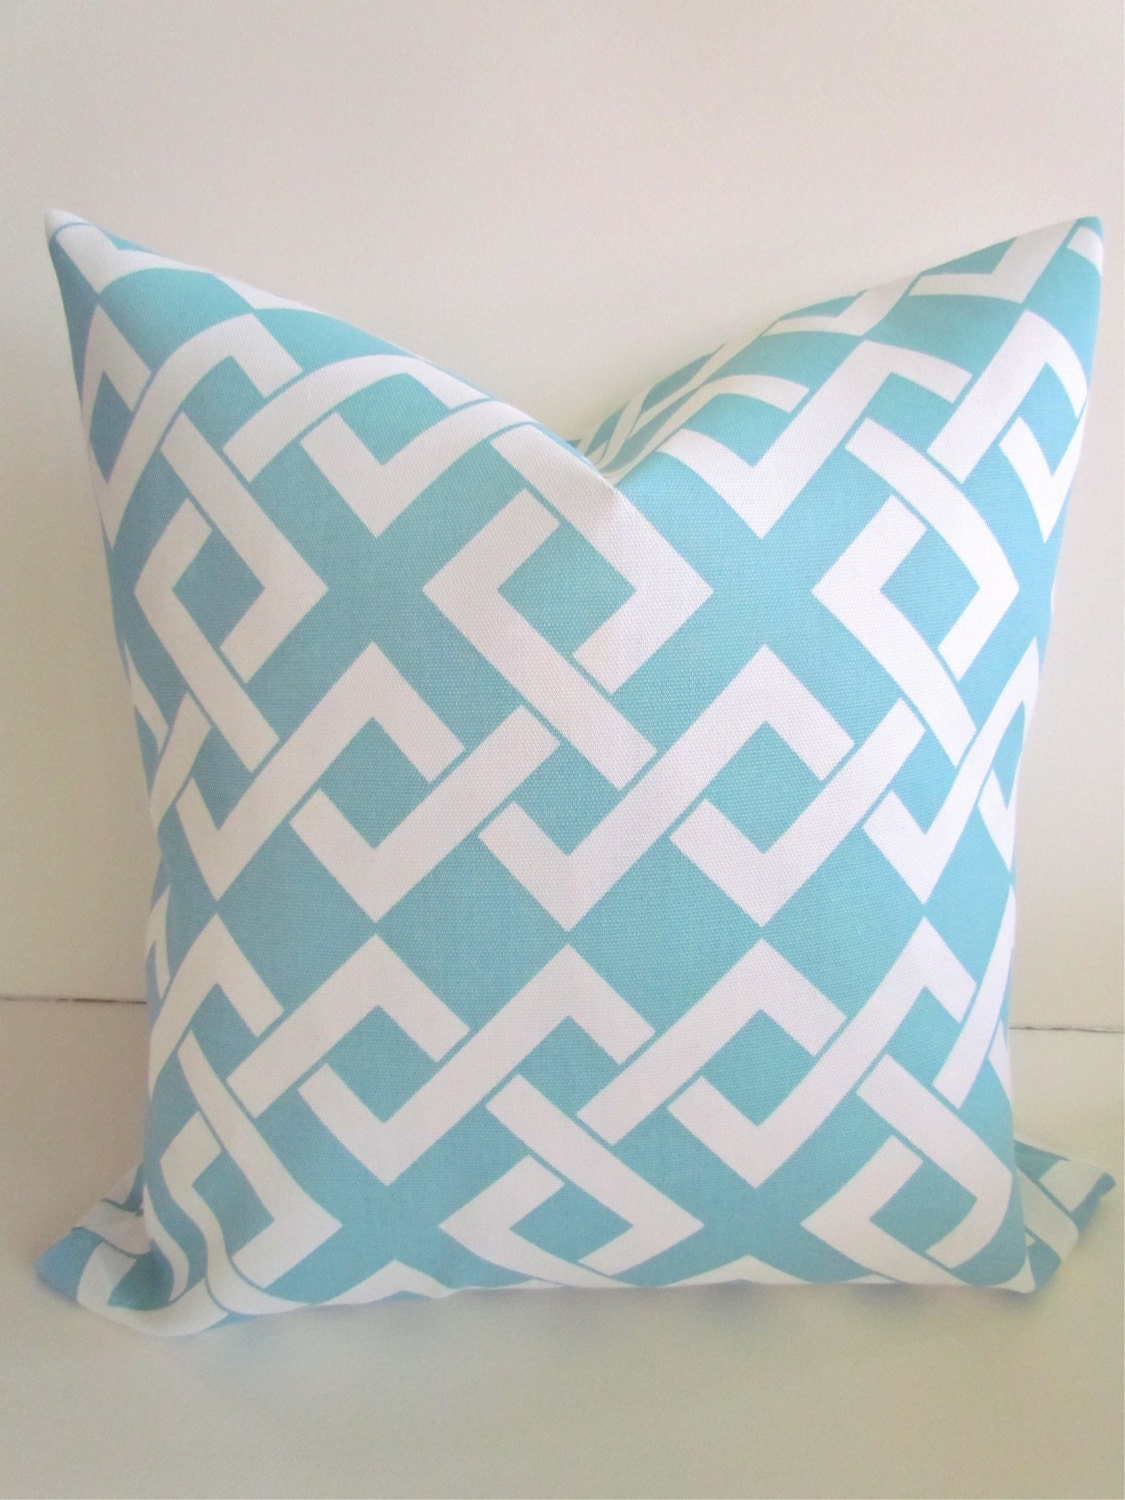 Throw Pillow Etsy : OUTDOOR PILLOWS Light Blue Throw Pillow Covers Blue Outdoor